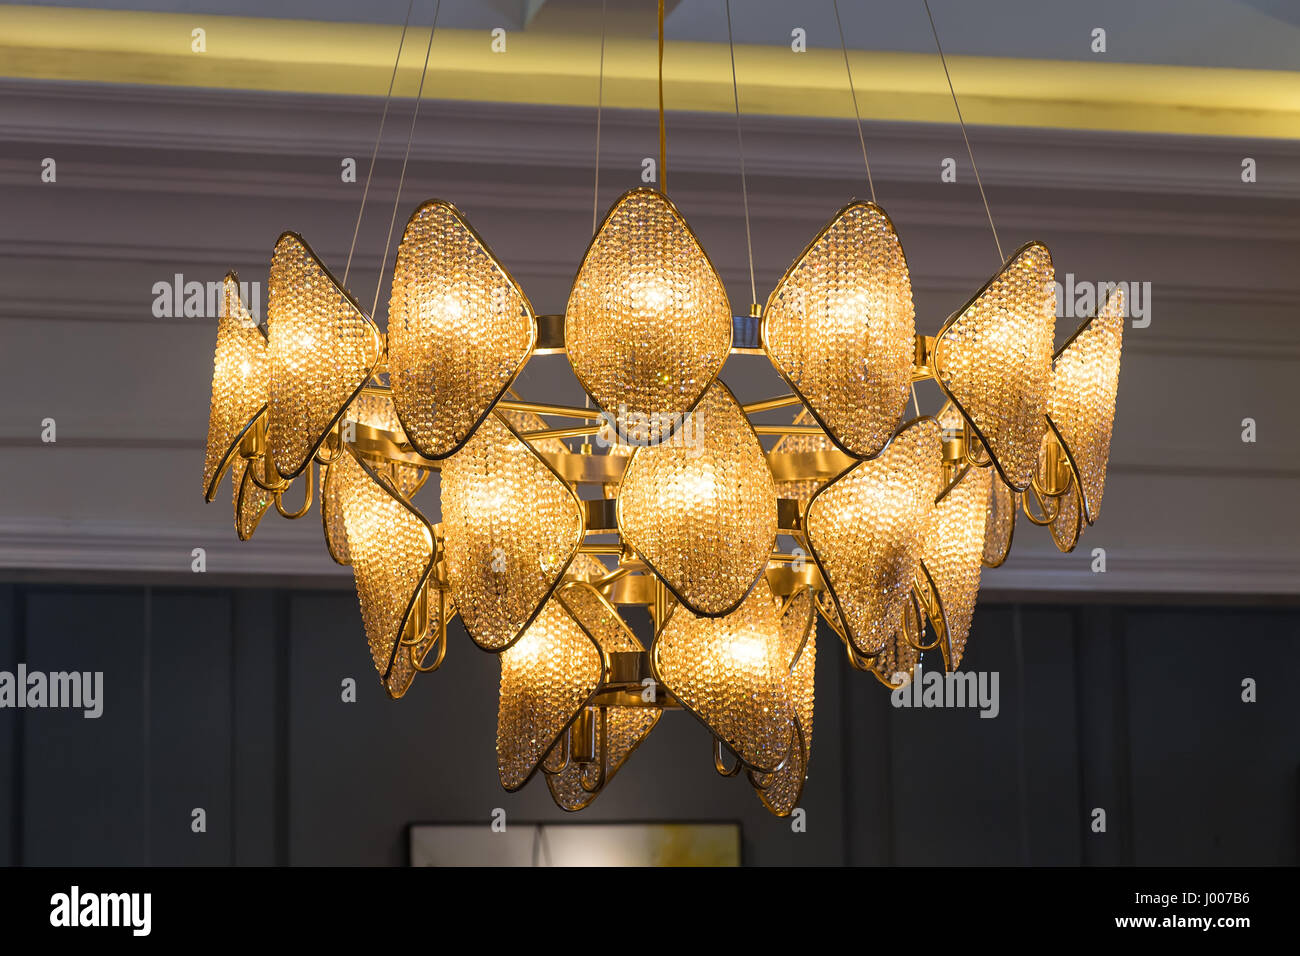 Elegant crystal chandelier stock photo royalty free image elegant crystal chandelier arubaitofo Choice Image